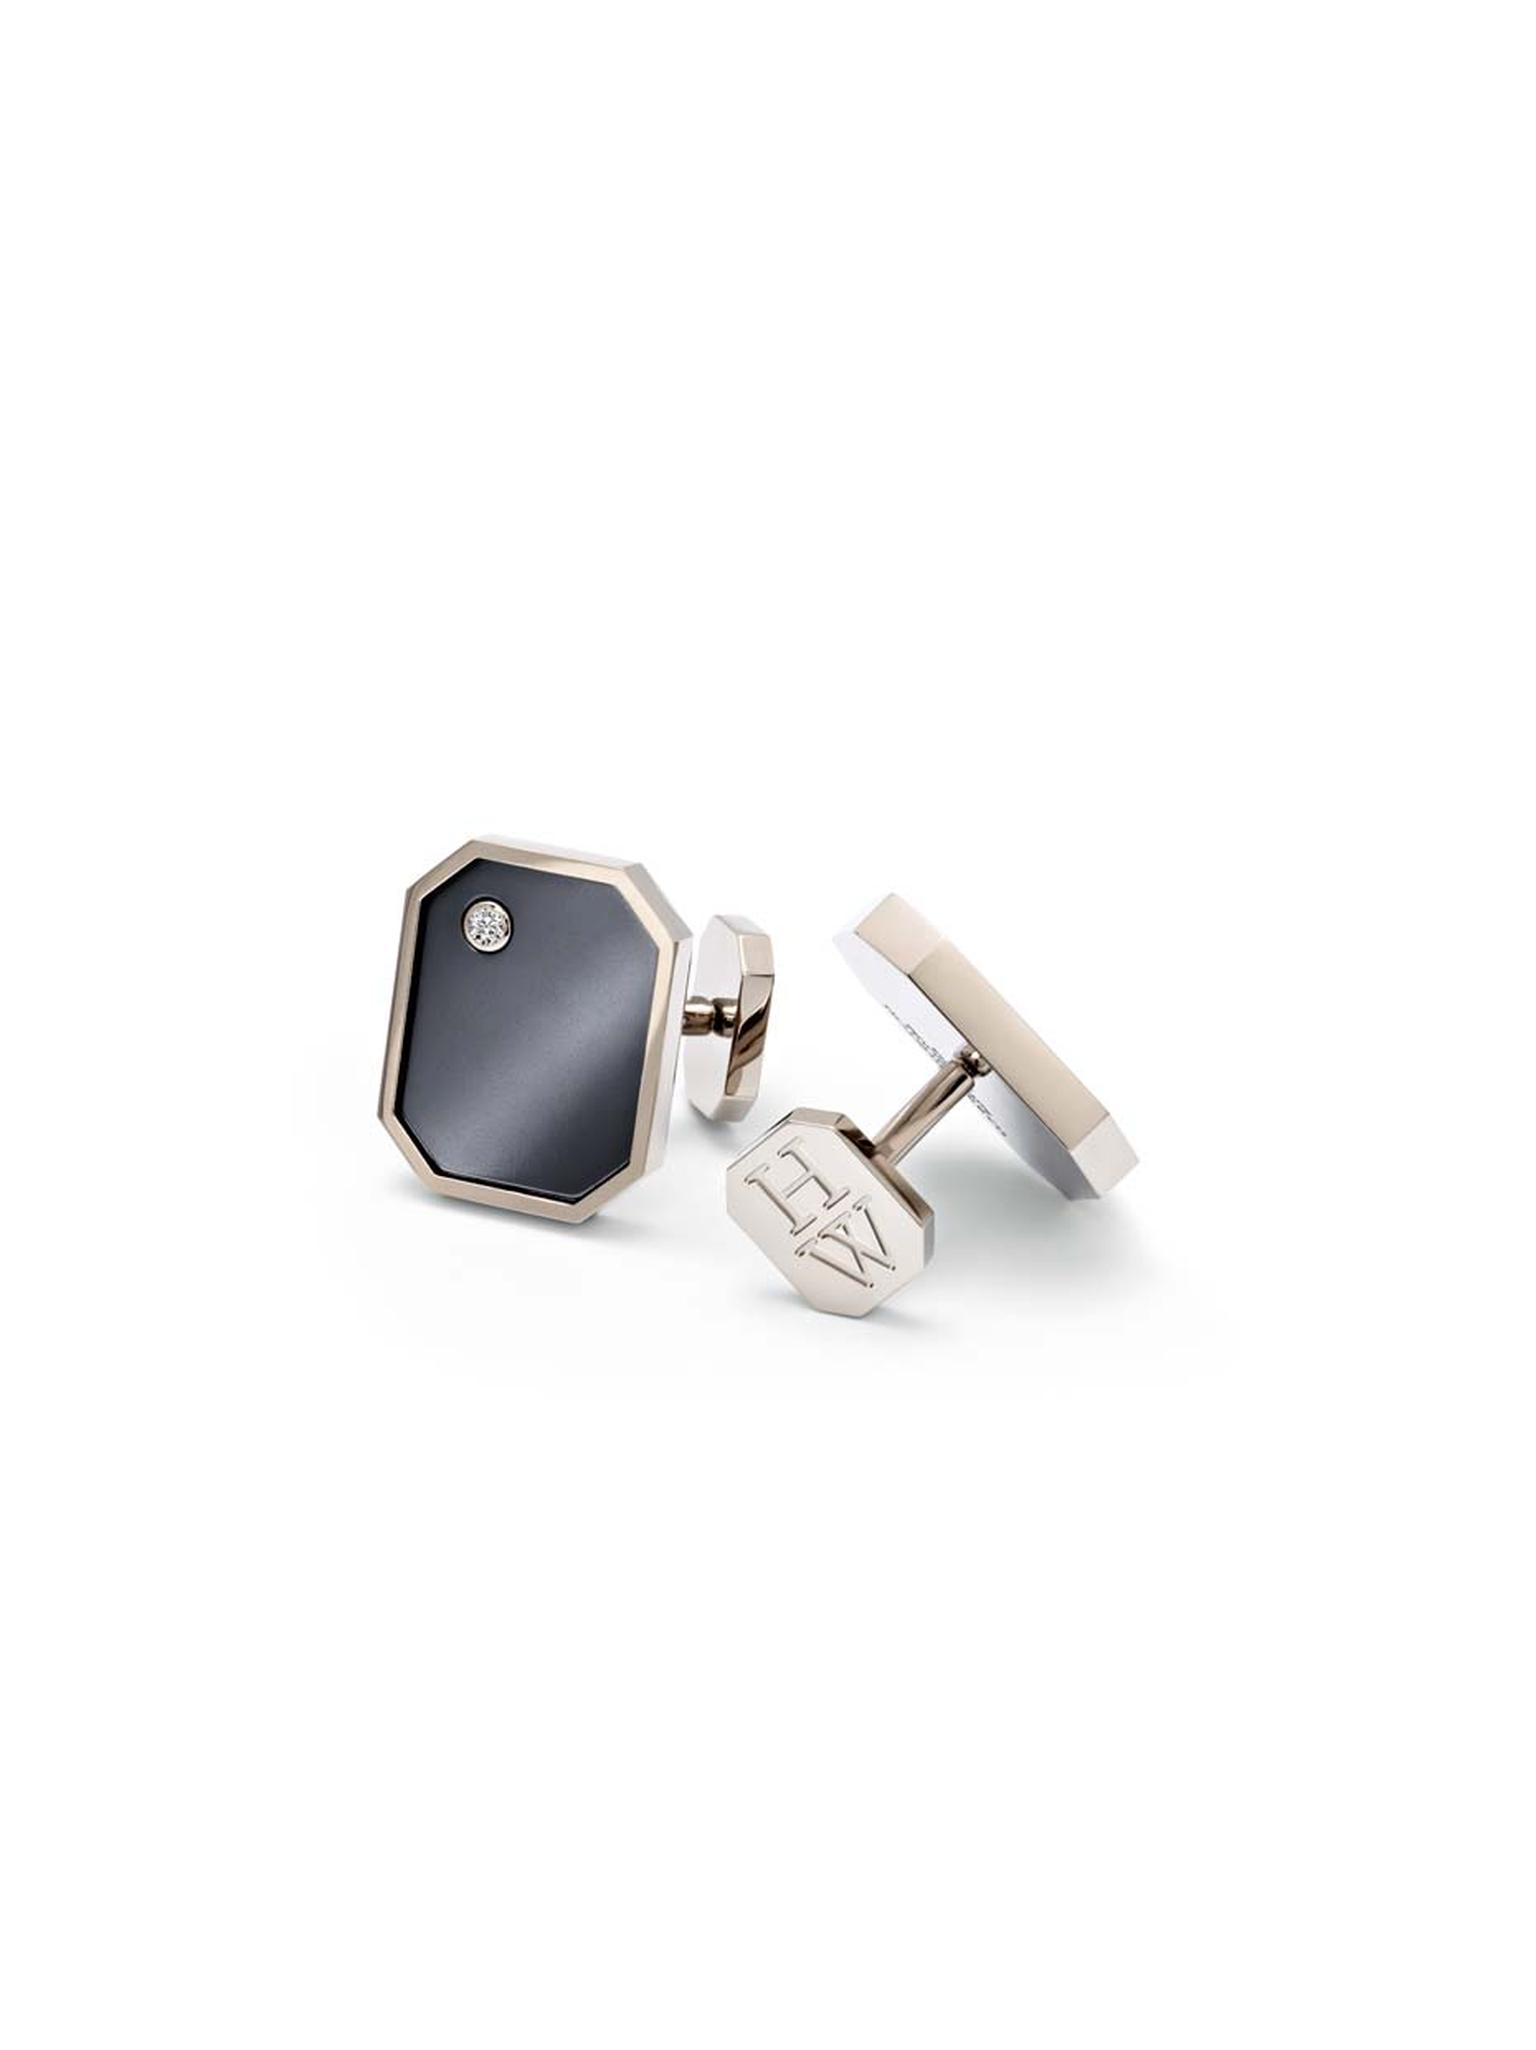 Harry Winston Zalium Collection men's cufflinks form part of a new line of sleek jewelry for men made from the high-tech zirconium-based alloy.